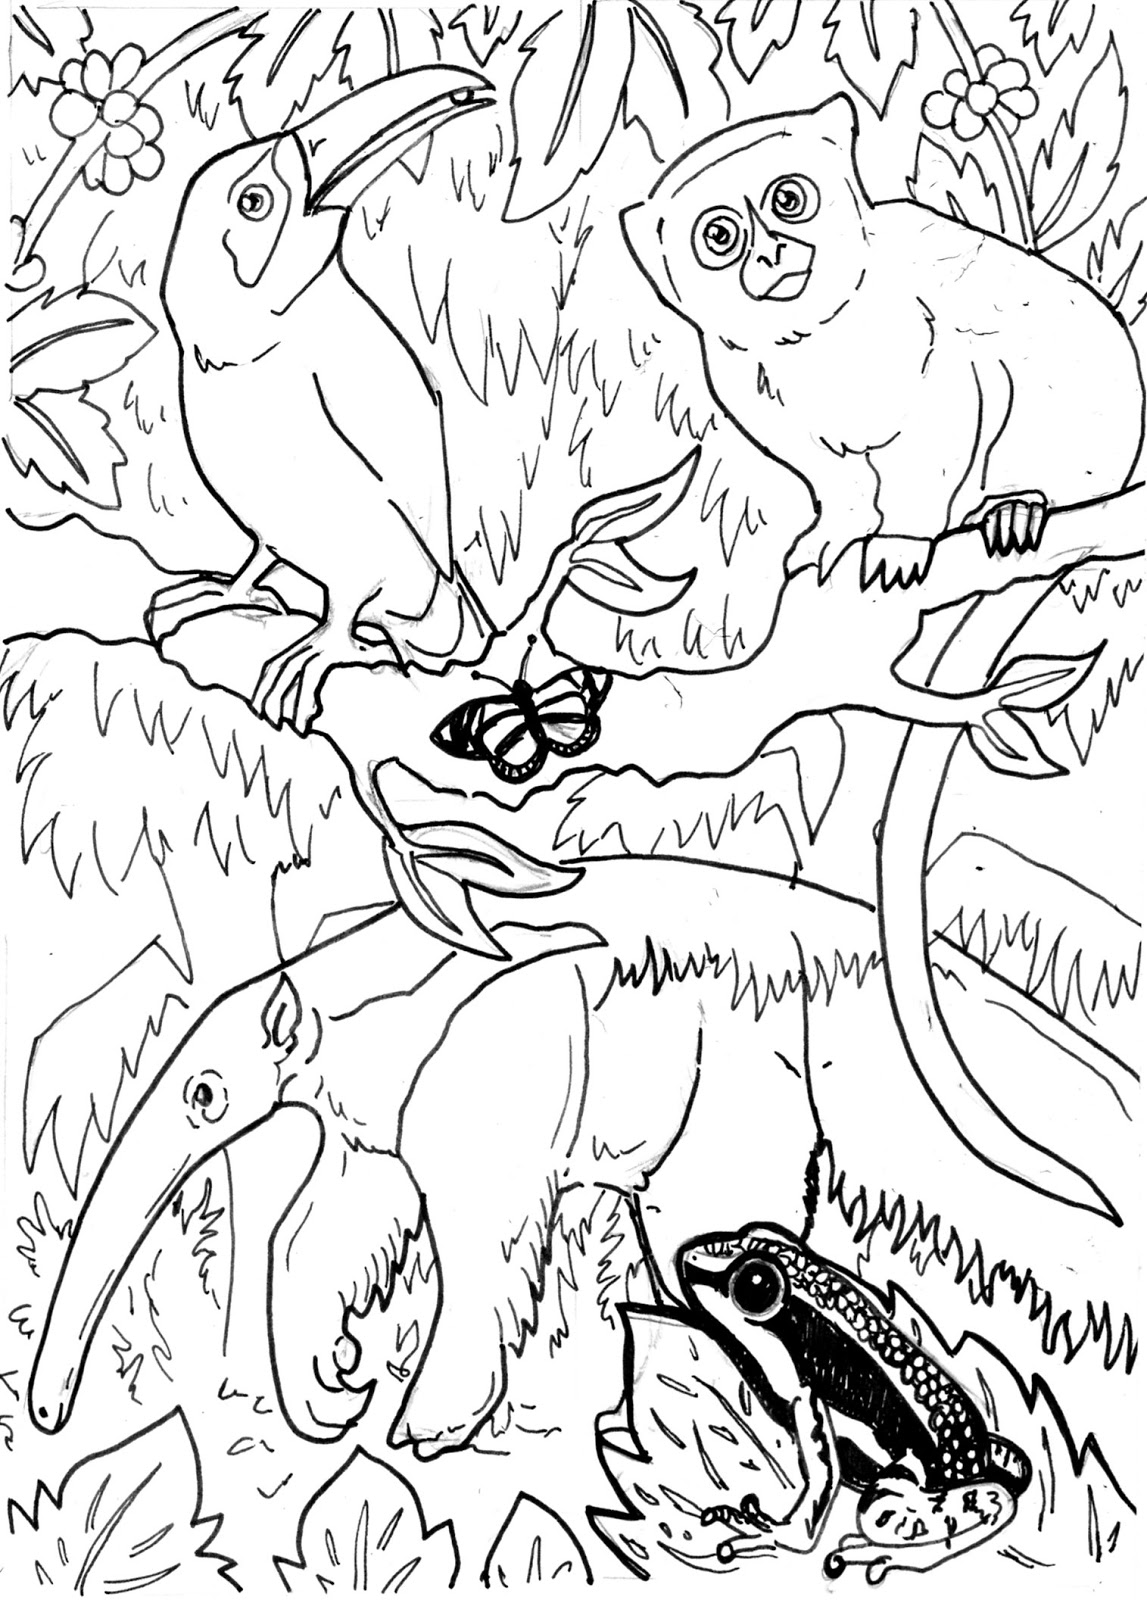 rainforest animals coloring pages rainforest animal coloring pages getcoloringpagescom coloring pages rainforest animals